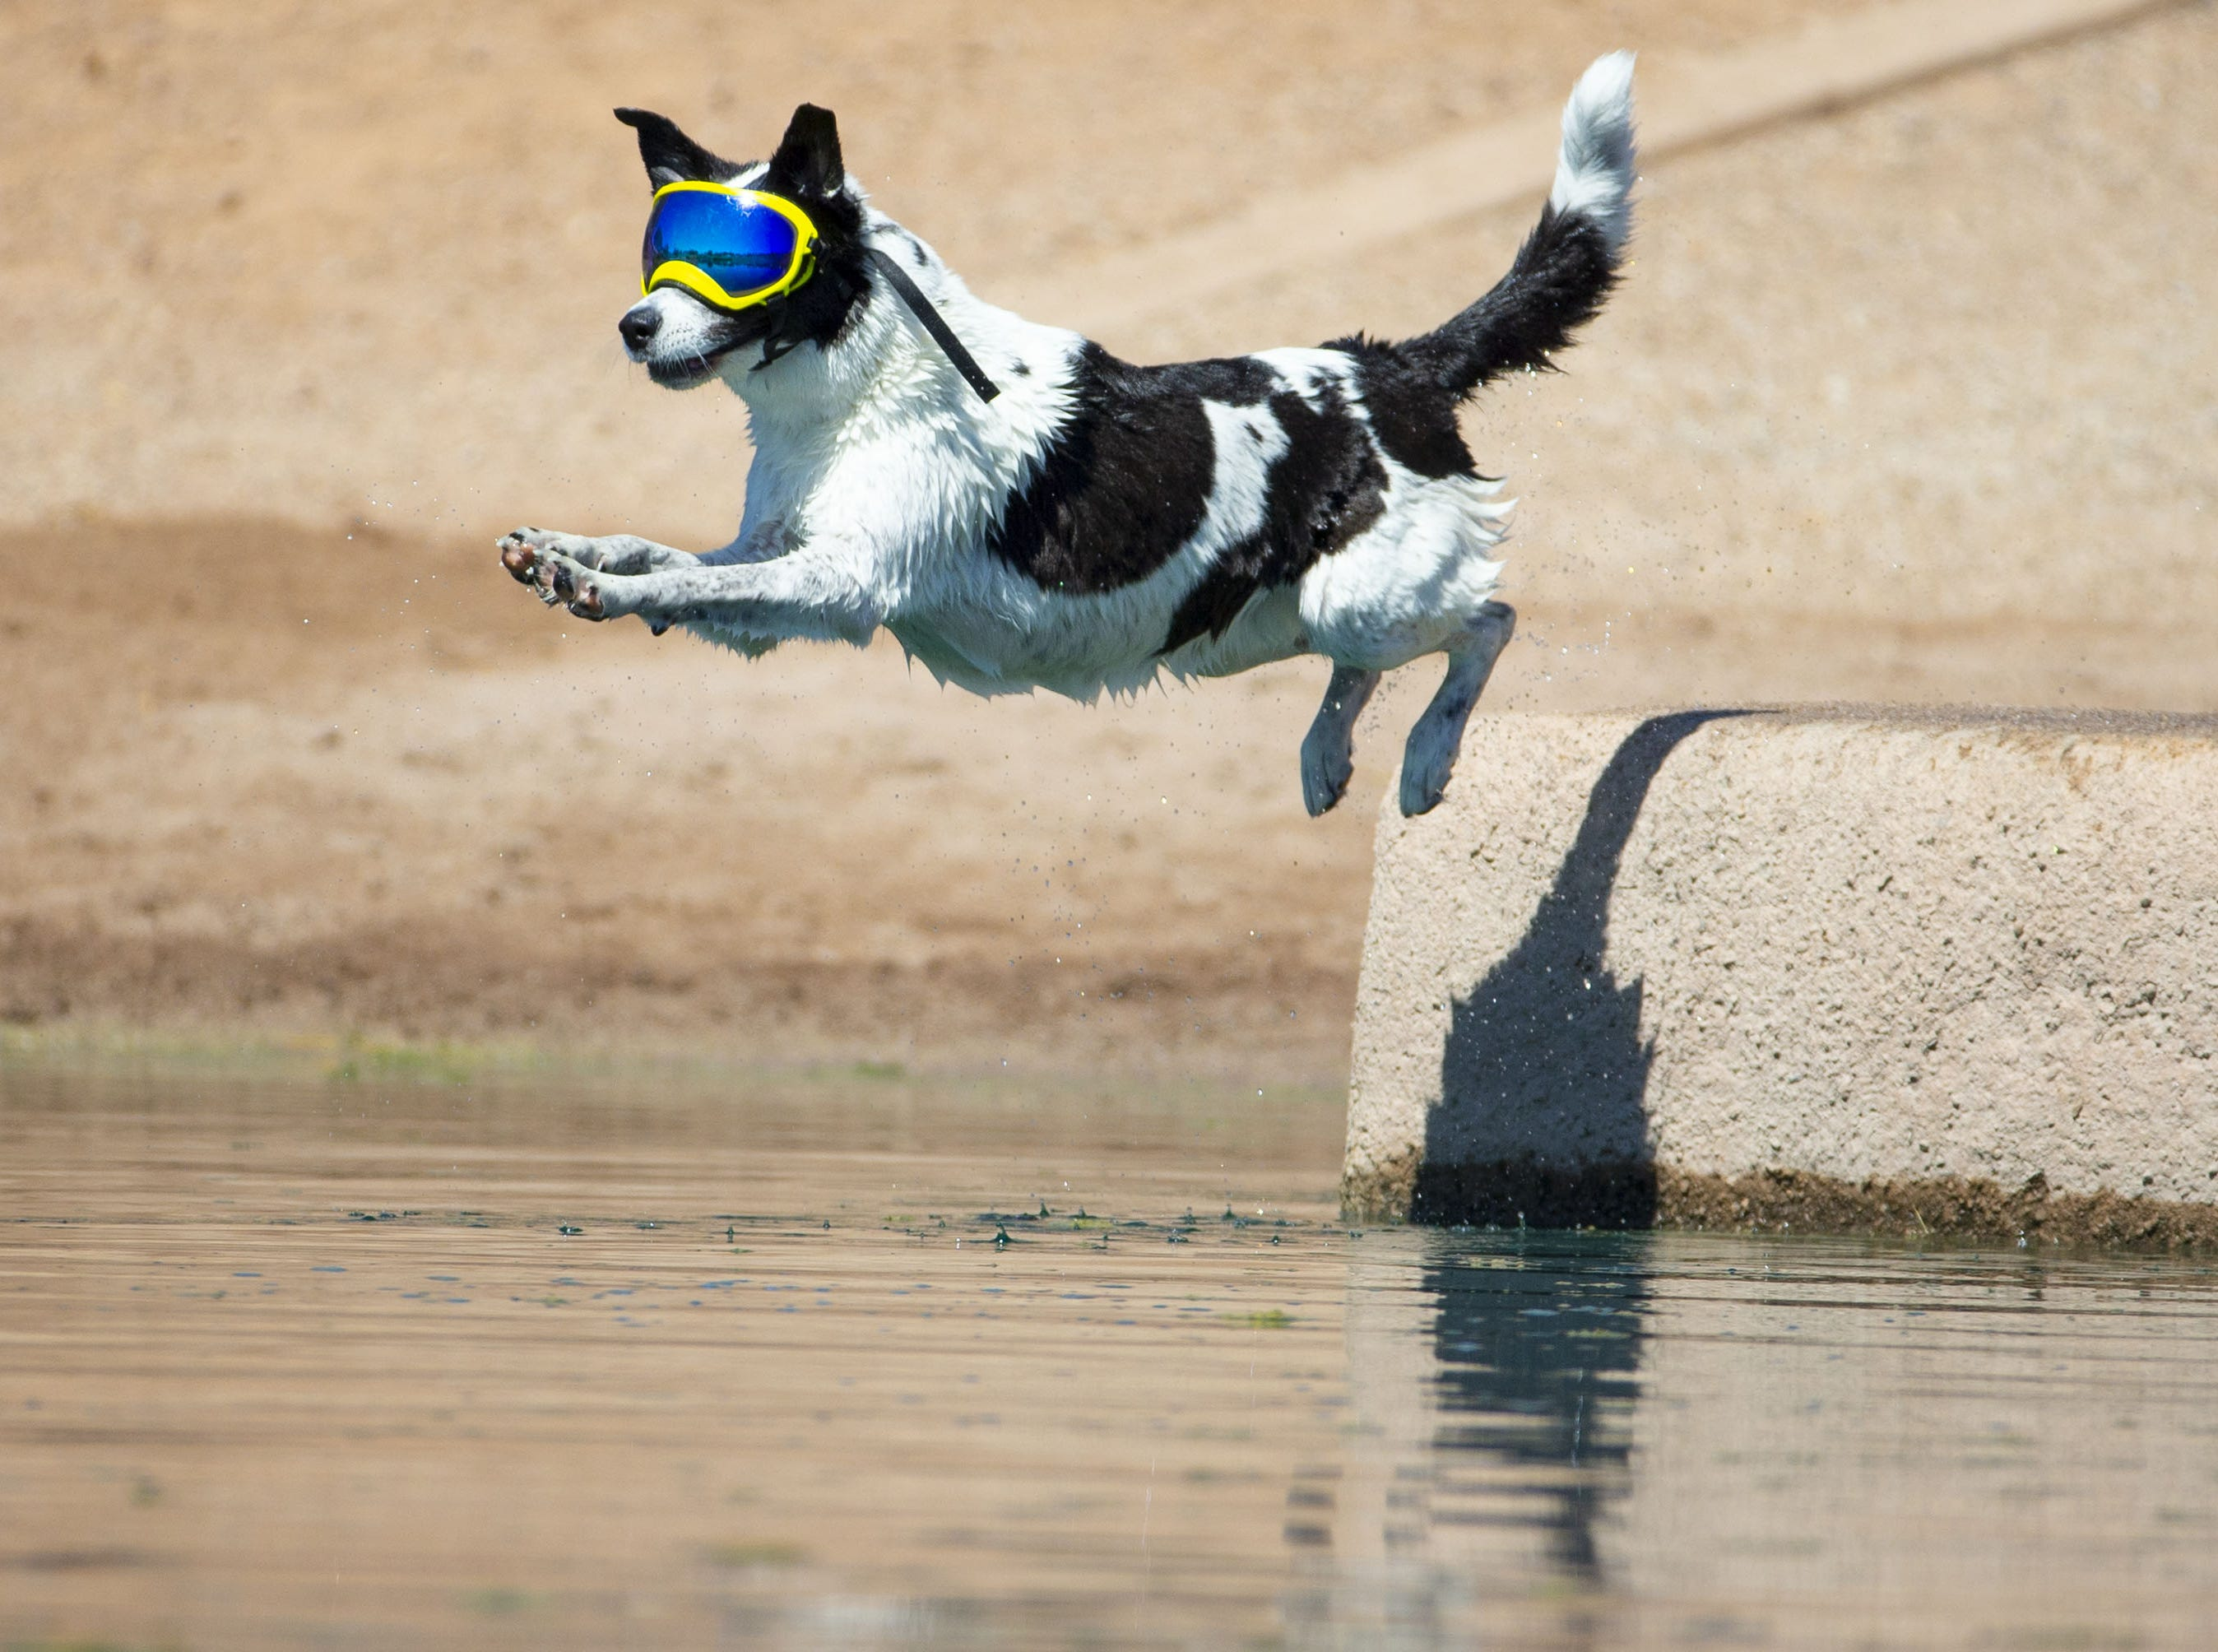 Mazy, of Chandler,  cools off in the lake at  Cosmo Dog Park in Gilbert on September 13, 2018.